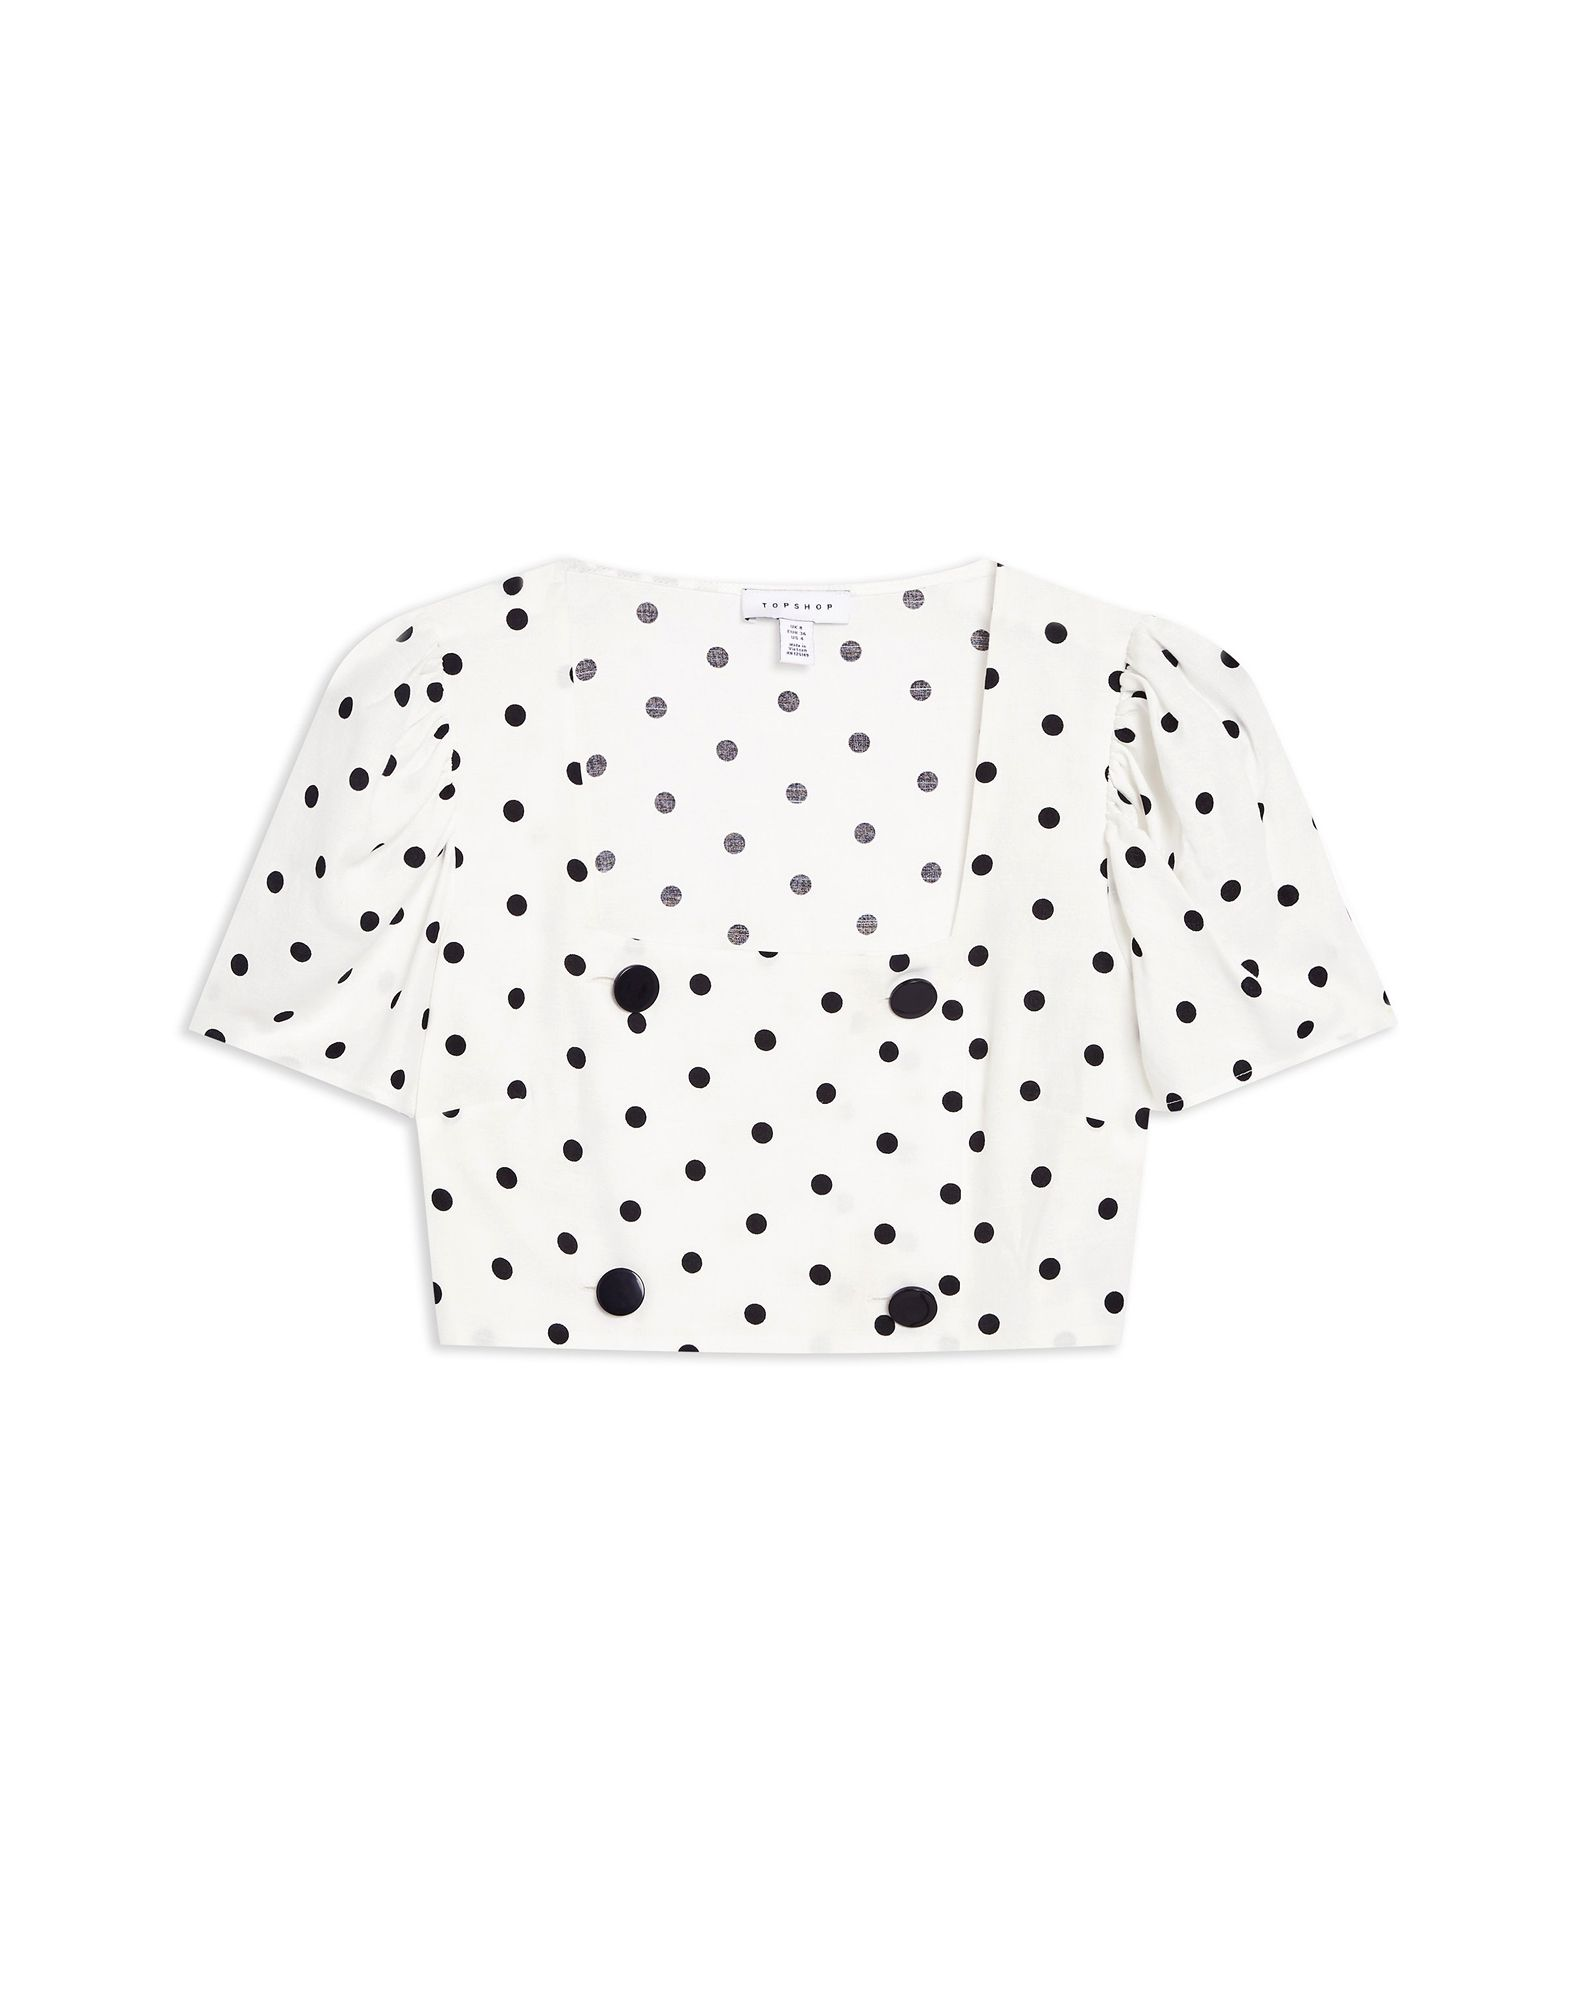 T-Shirt Topshop Spot Button Crop Top - damen - 12366936KQ